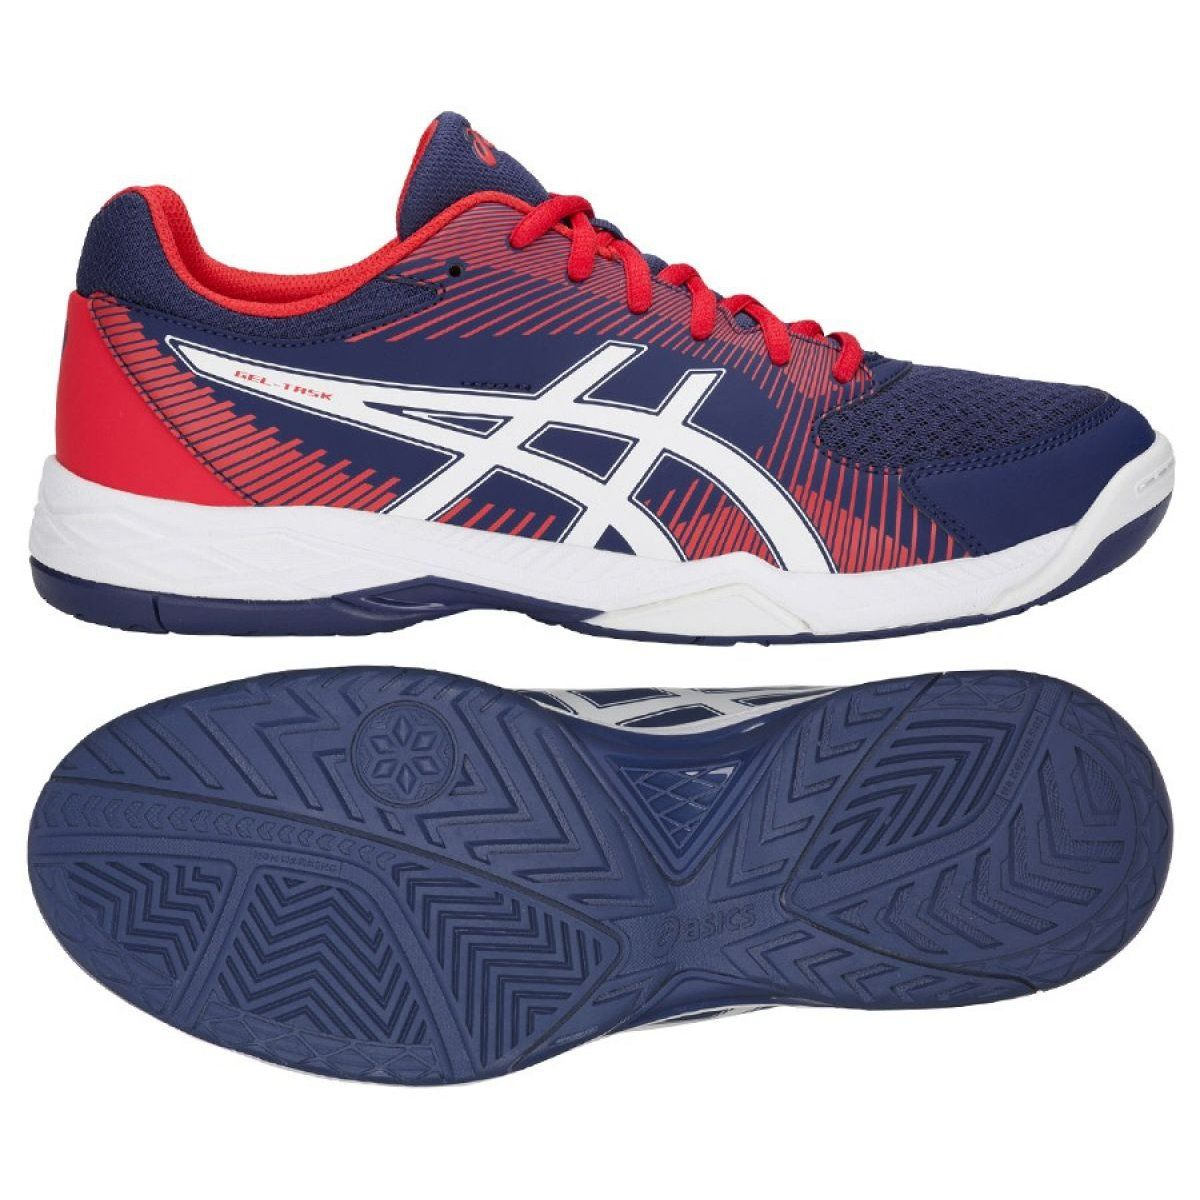 Asics Gel Task M B704y 400 Volleyball Shoes Navy Navy Volleyball Shoes Mens Volleyball Shoes Asics